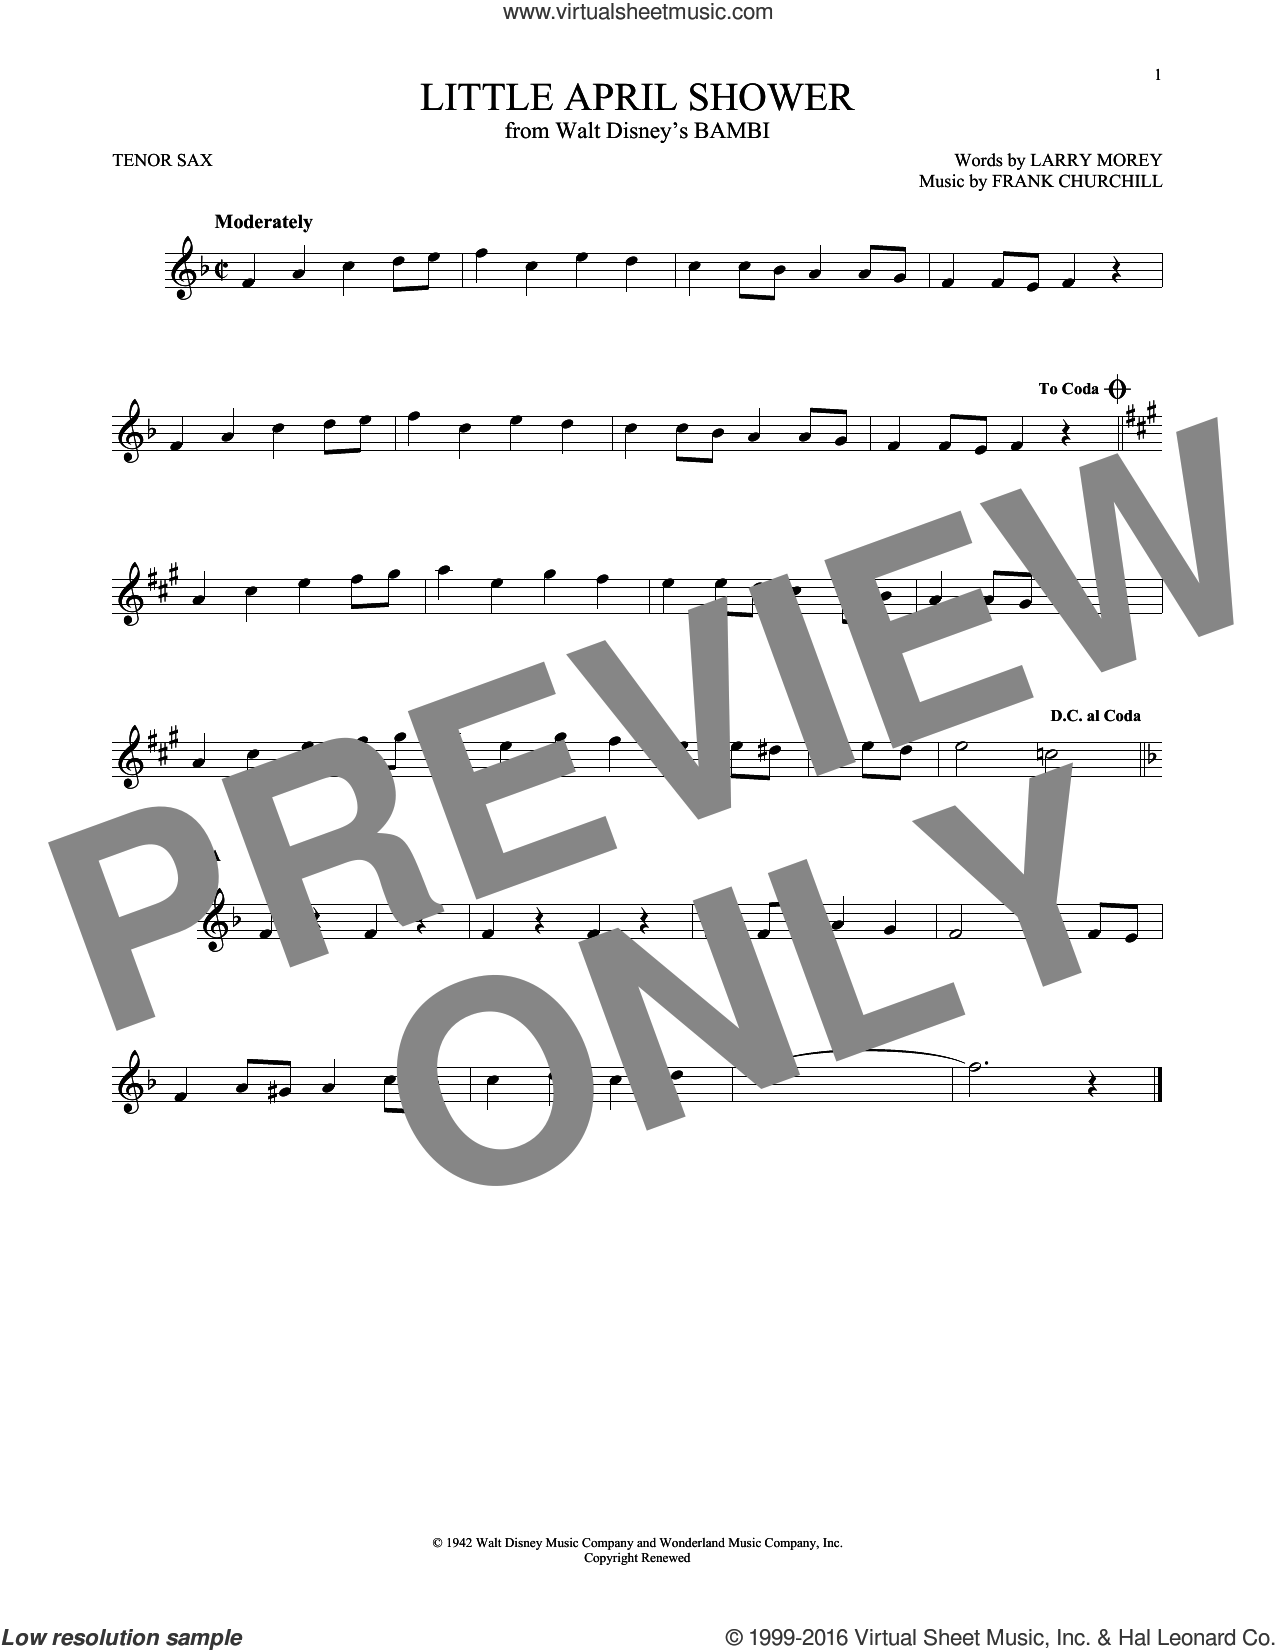 Little April Shower sheet music for tenor saxophone solo by Larry Morey and Frank Churchill, intermediate skill level